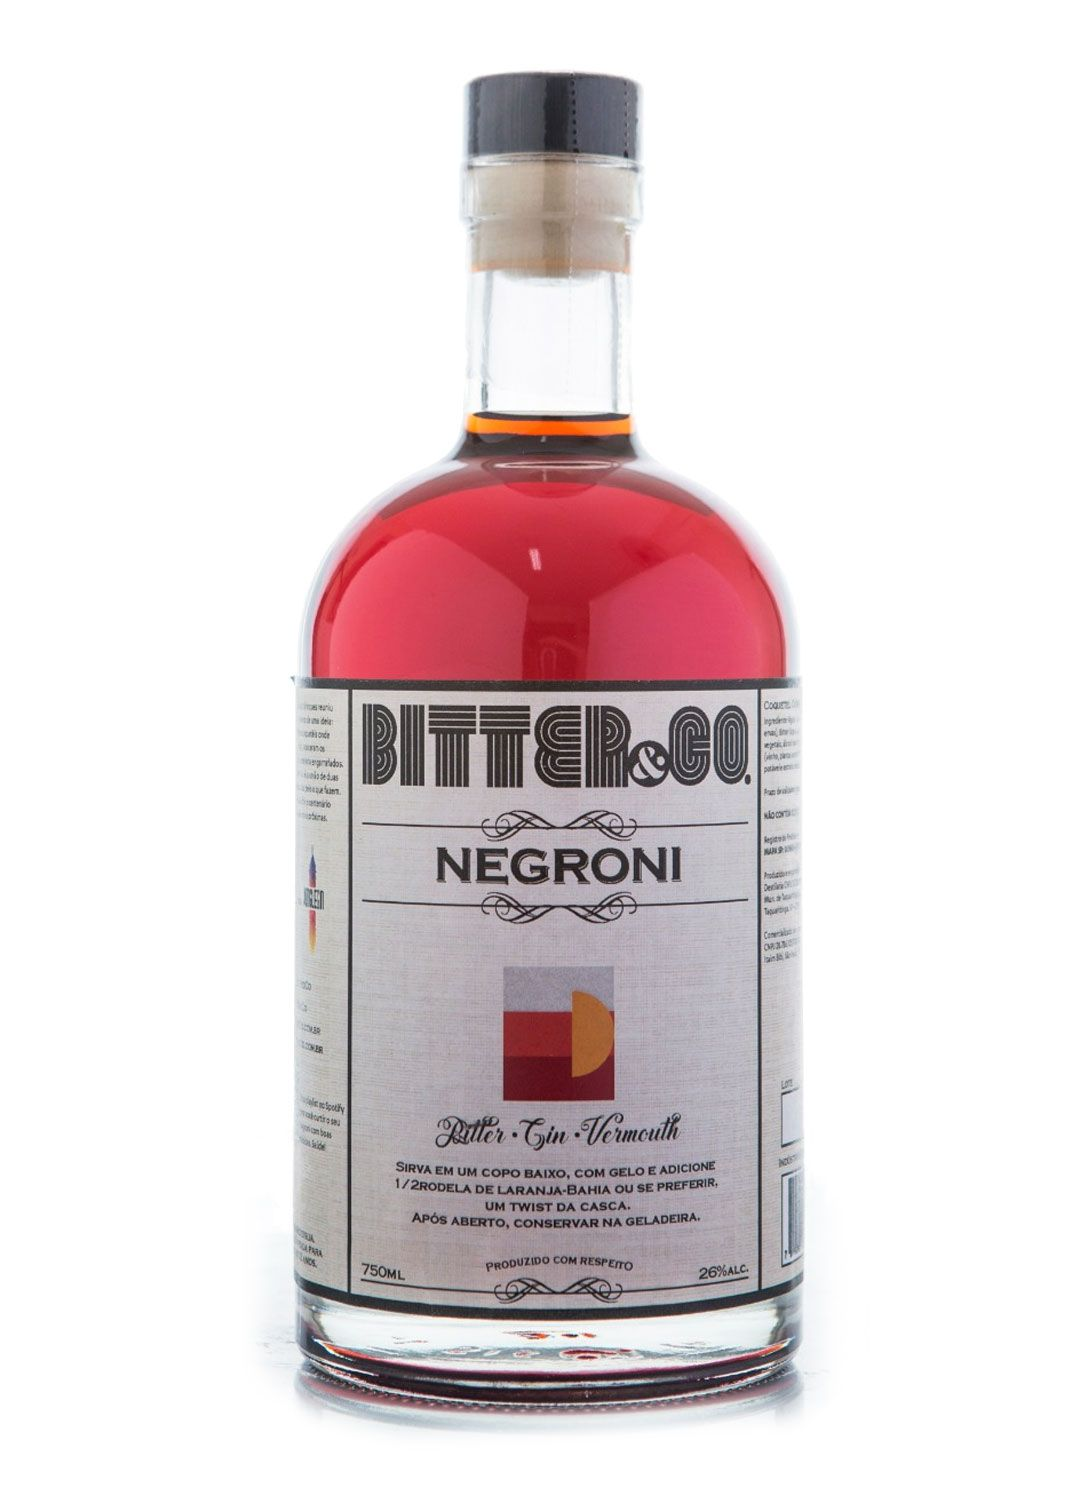 NEGRONI - BITTER & CO - 750 ML